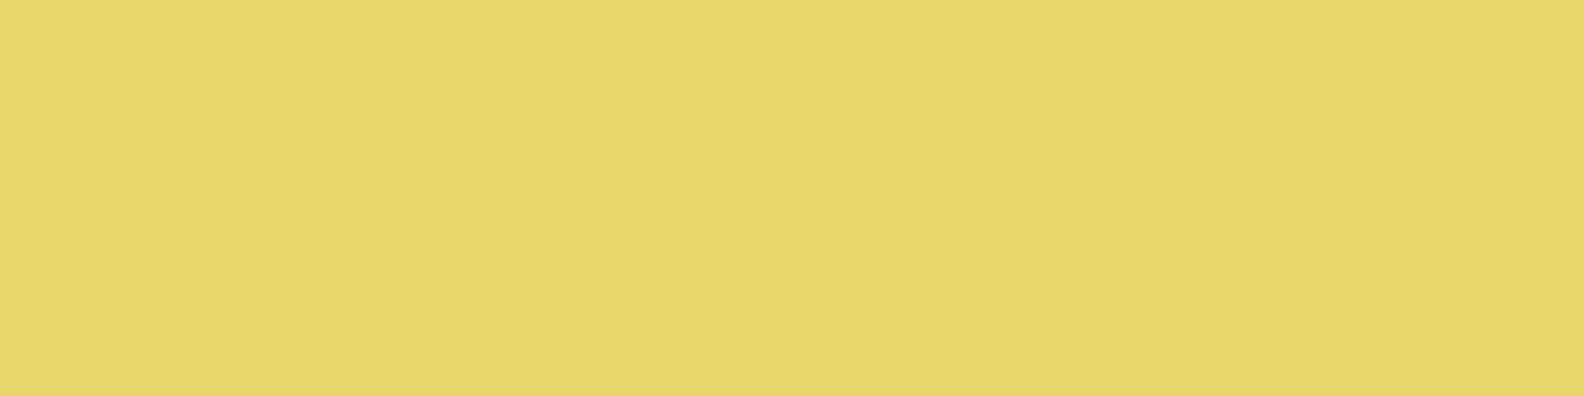 1584x396 Arylide Yellow Solid Color Background